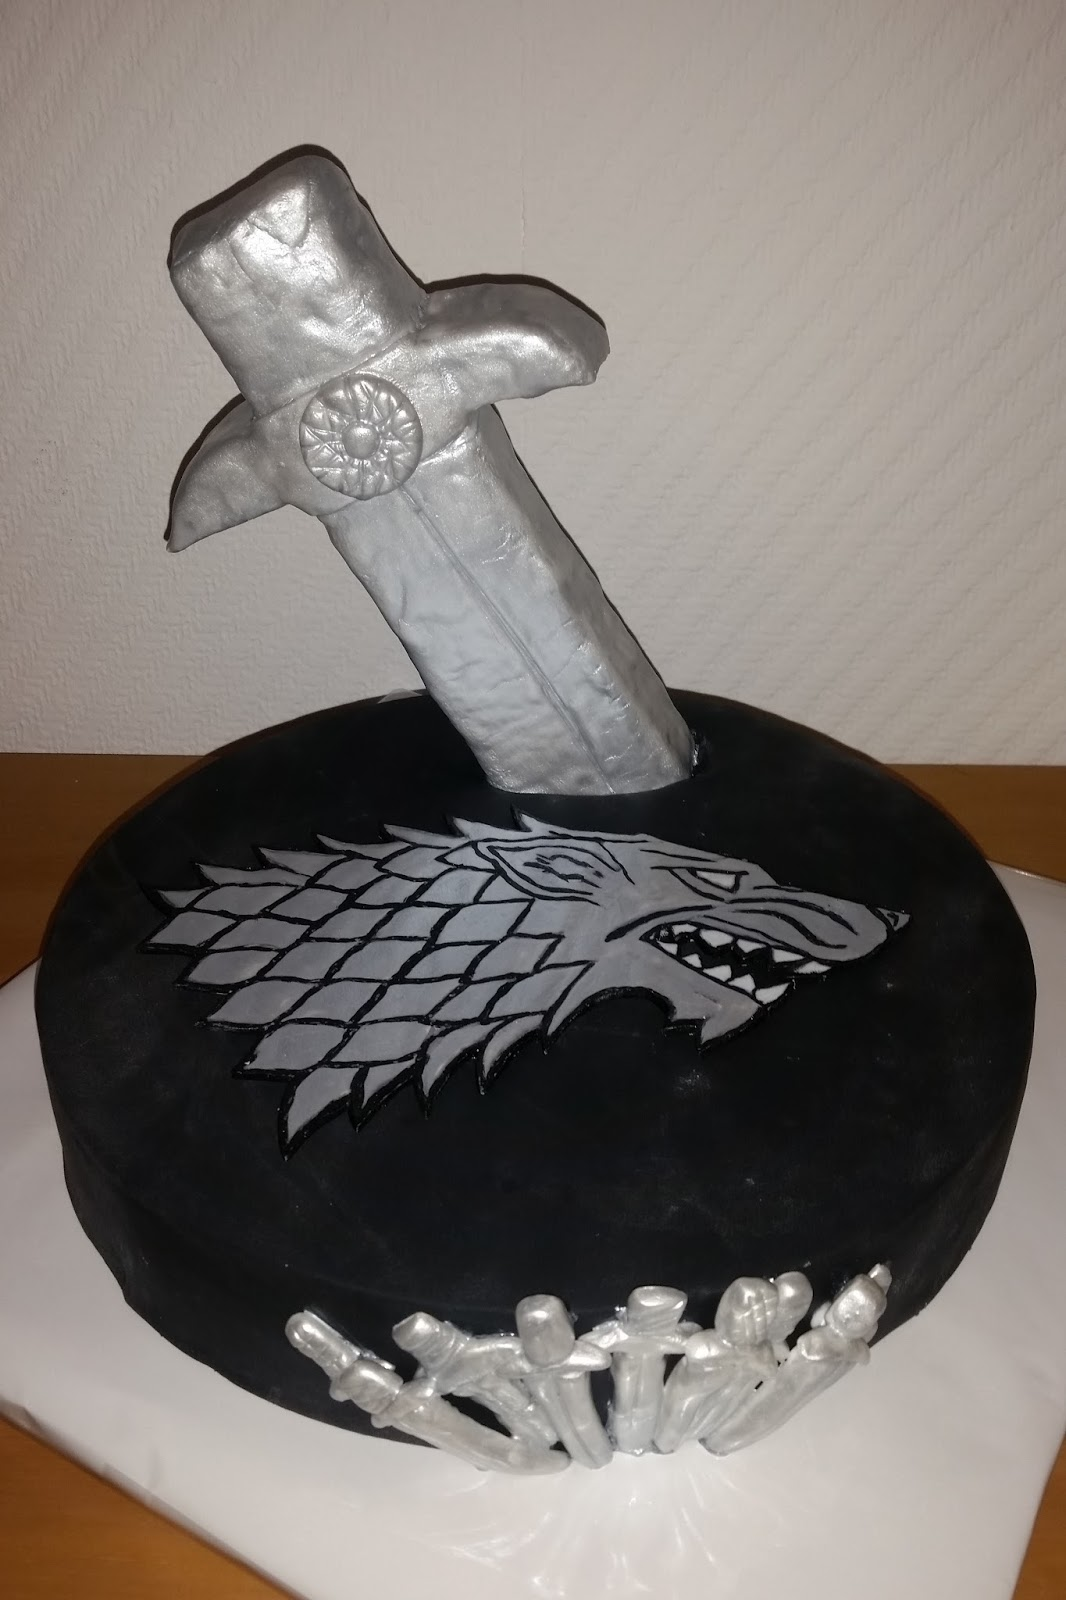 Sandy S Kitchendreams Game Of Thrones Kuchen